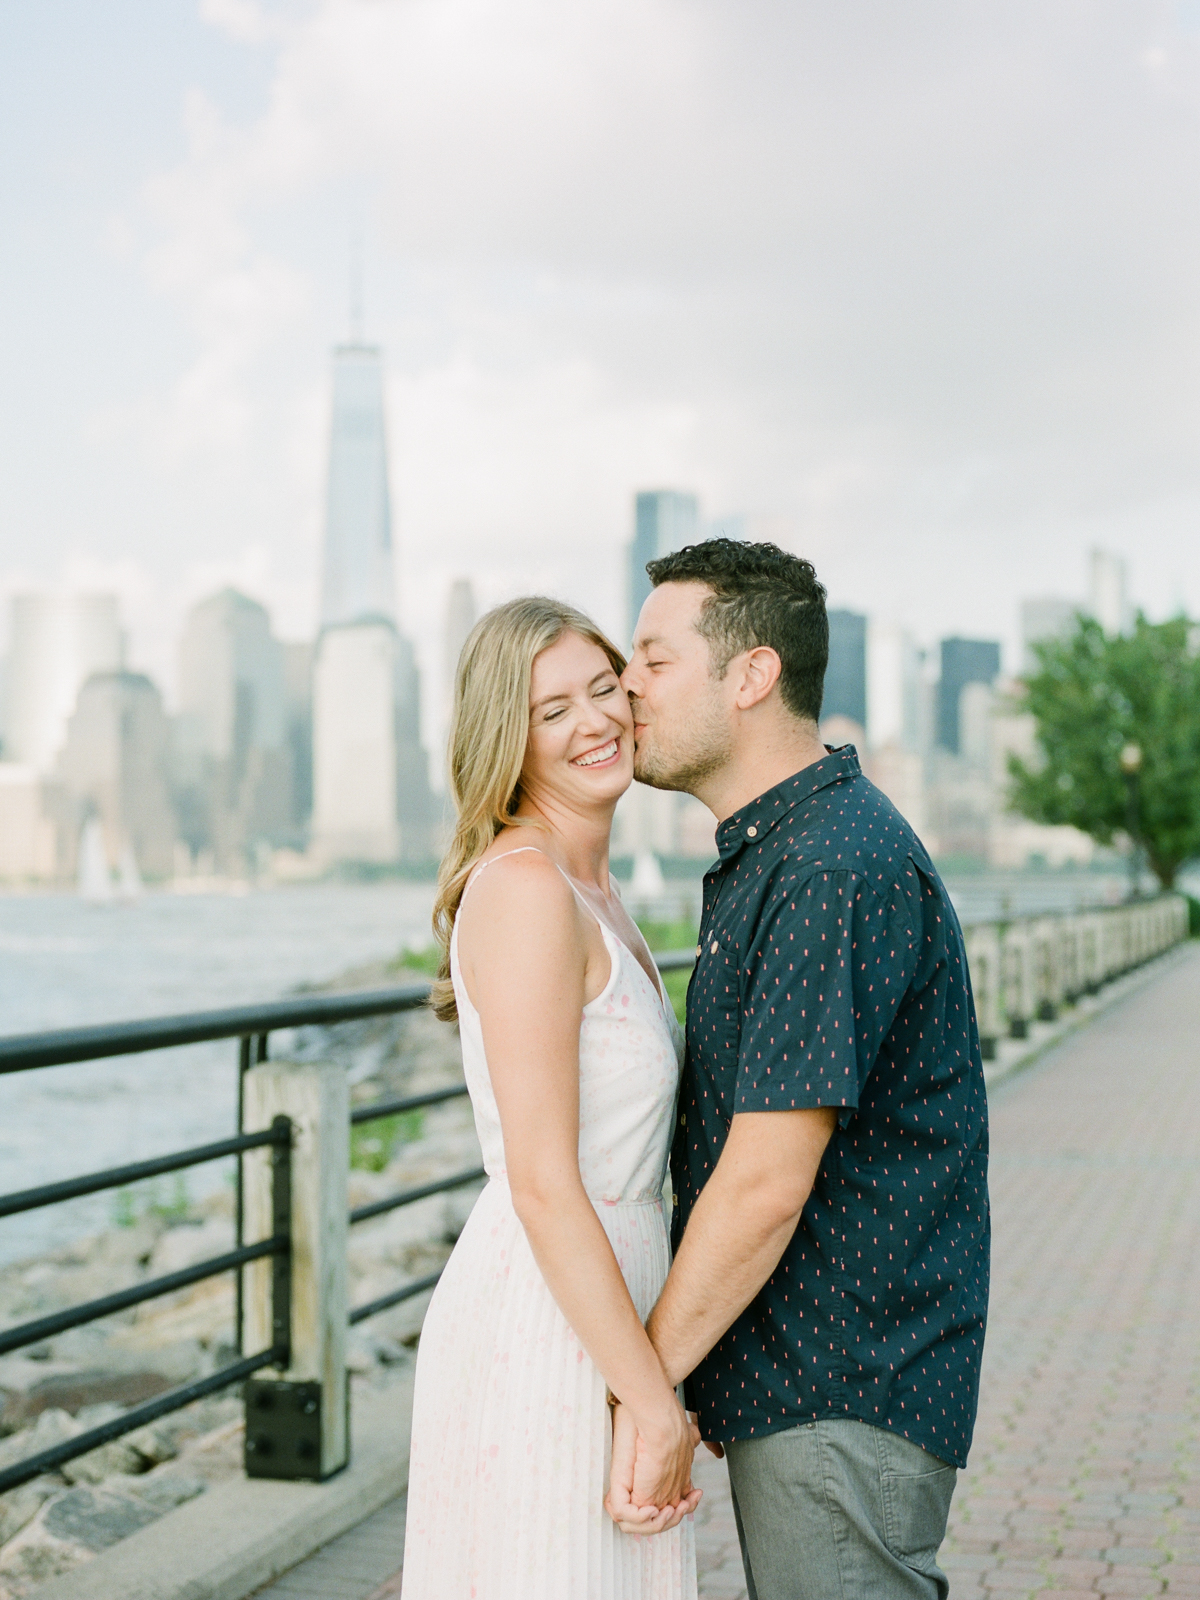 NYC-skyline-engagement-session-by-Tanya Isaeva-9.jpg